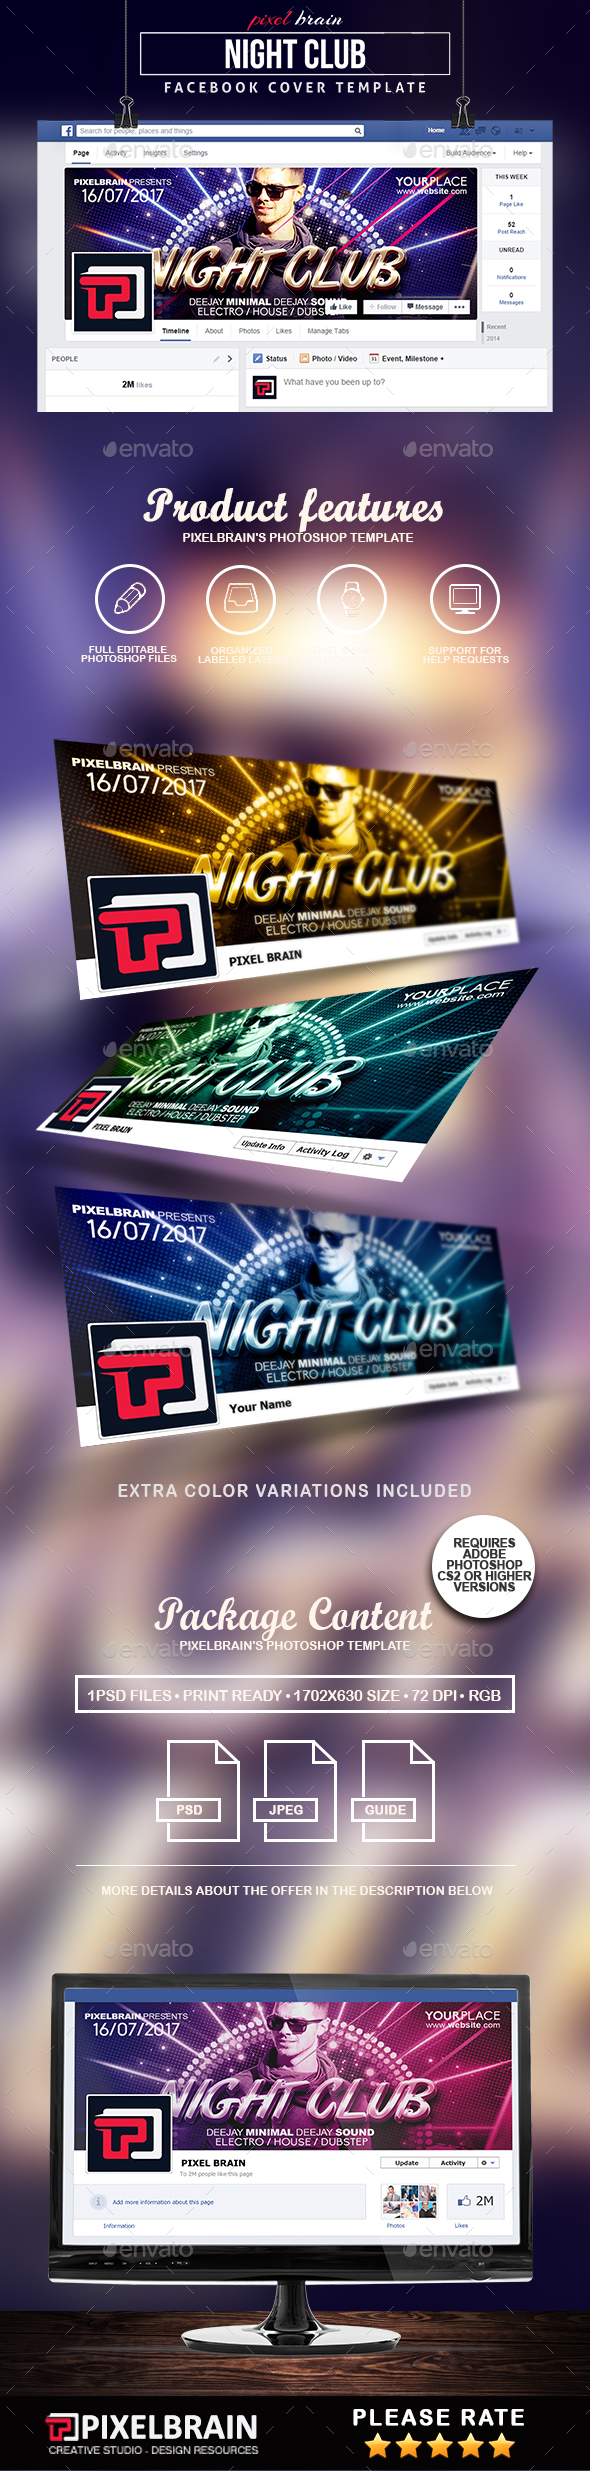 Night Club Facebook Cover Template - Facebook Timeline Covers Social Media